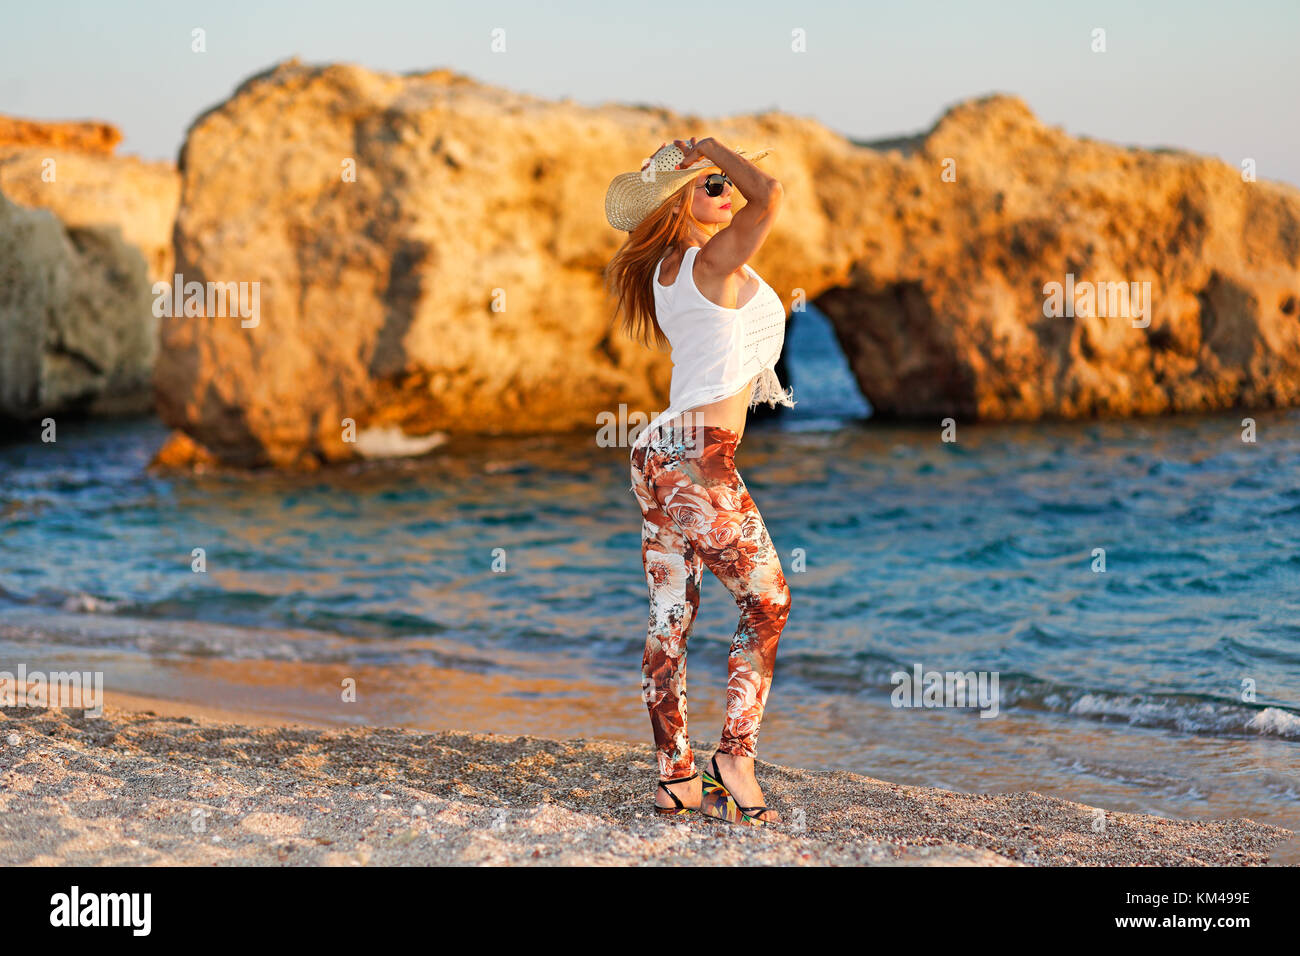 A beautiful woman at a wild beauty beach with unique caves in Karpathos, Greece - Stock Image